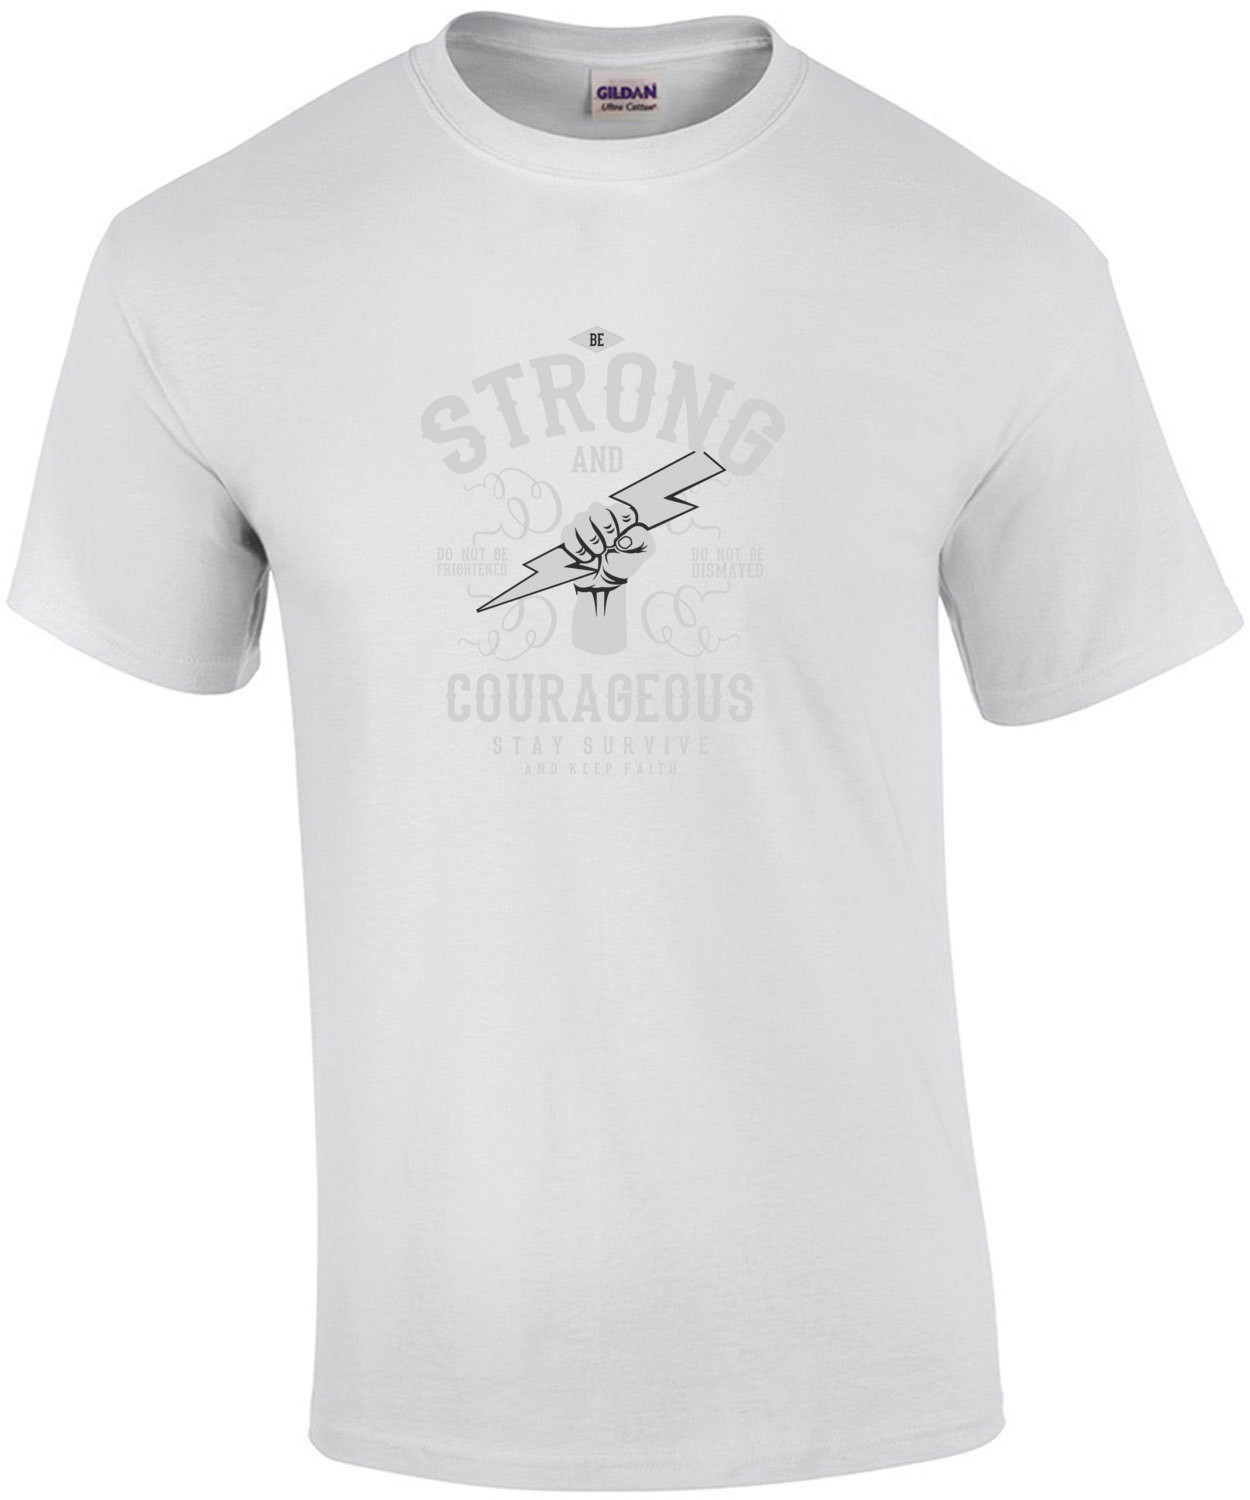 Be Strong And Courageous Motivational T-Shirt